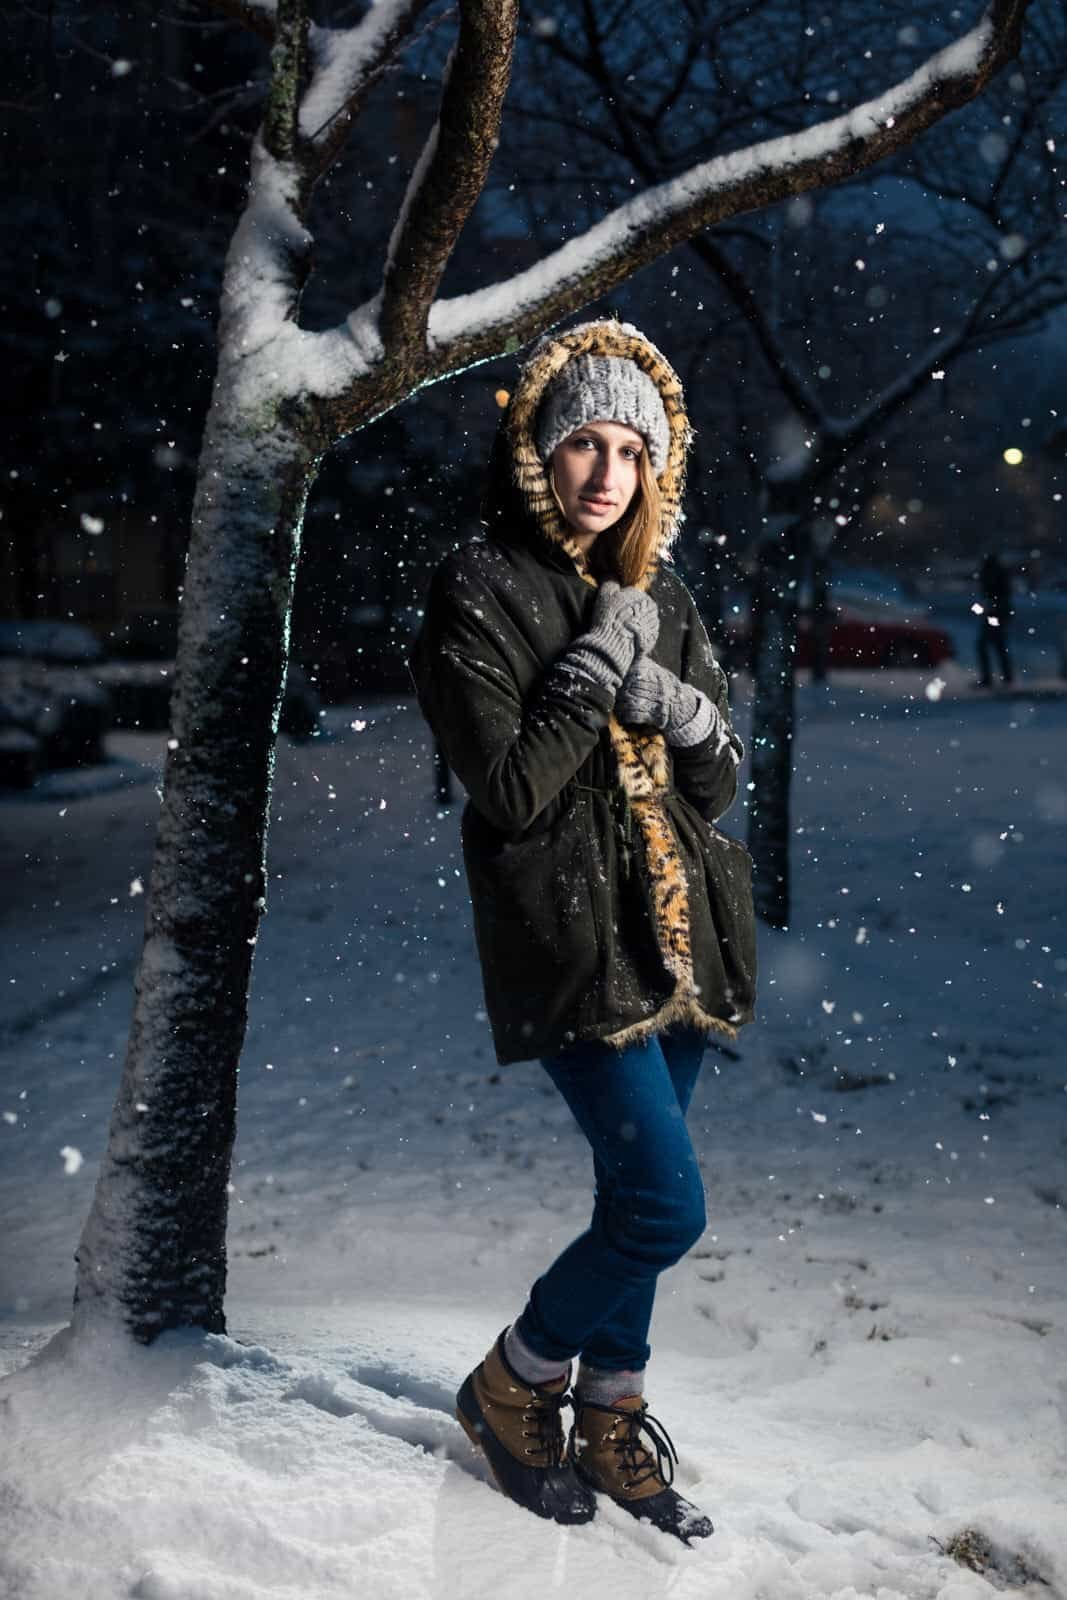 snow creative portrait Mike Glatzer